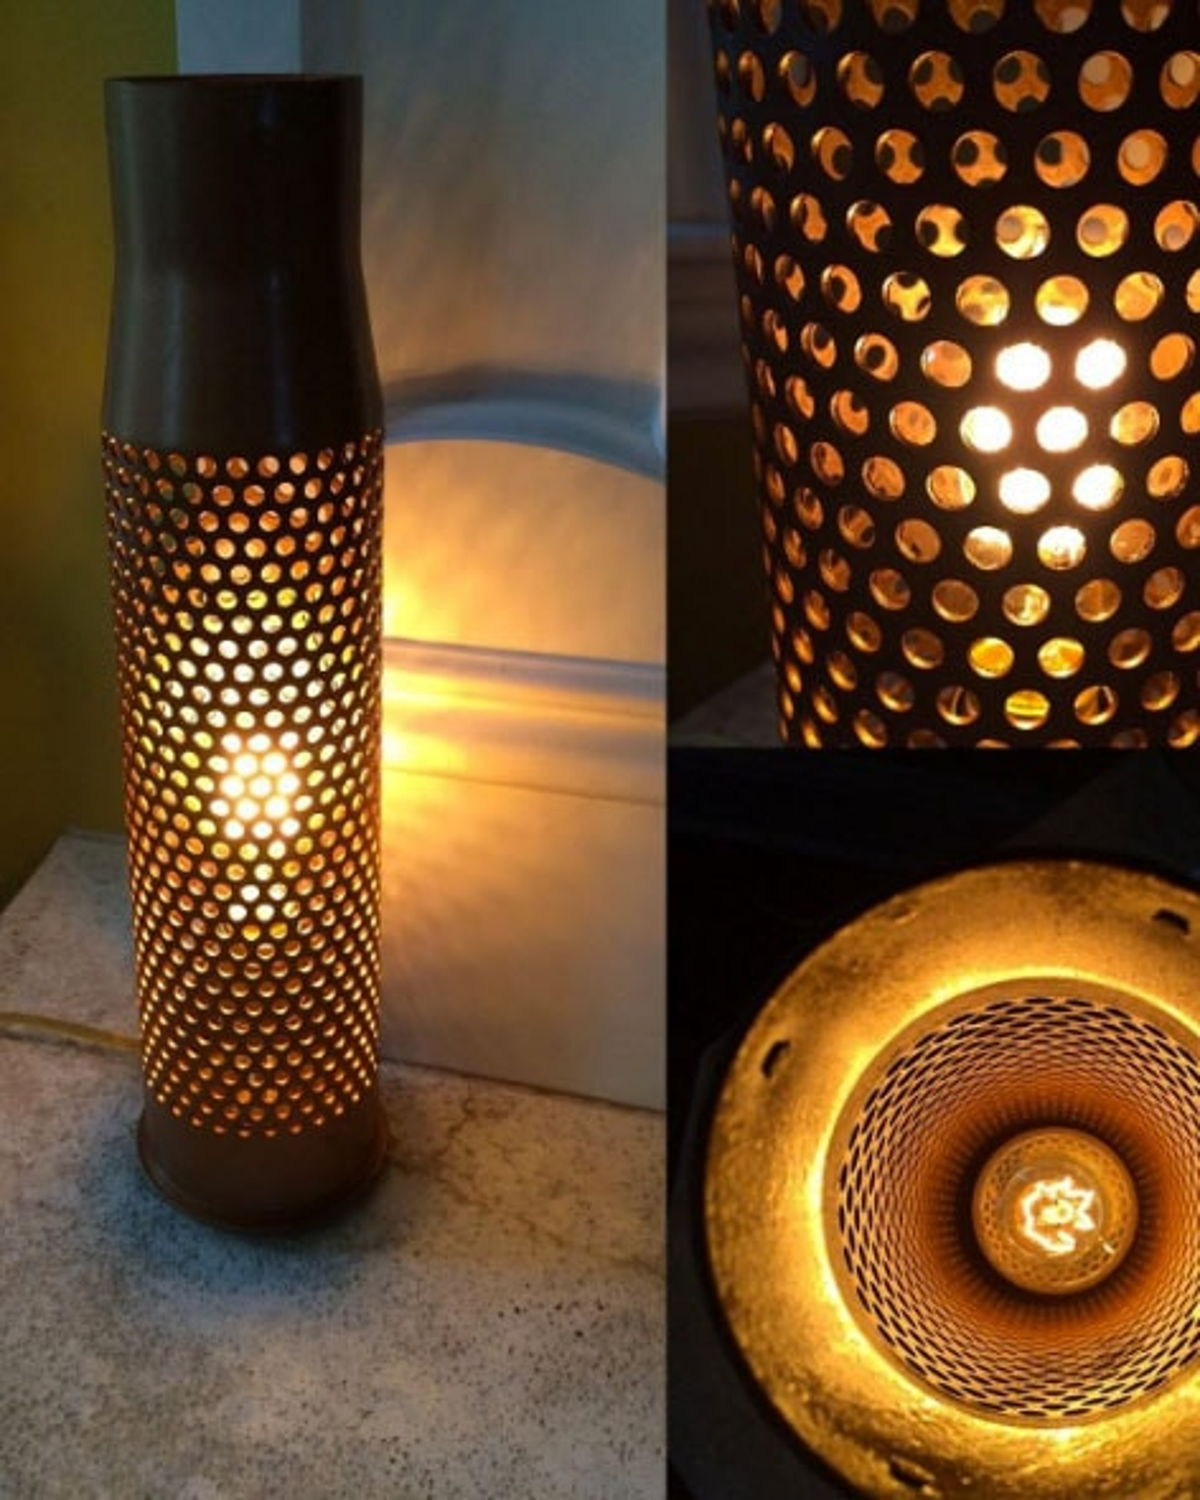 How Do You Make A Lamp Using Anything As A Base?